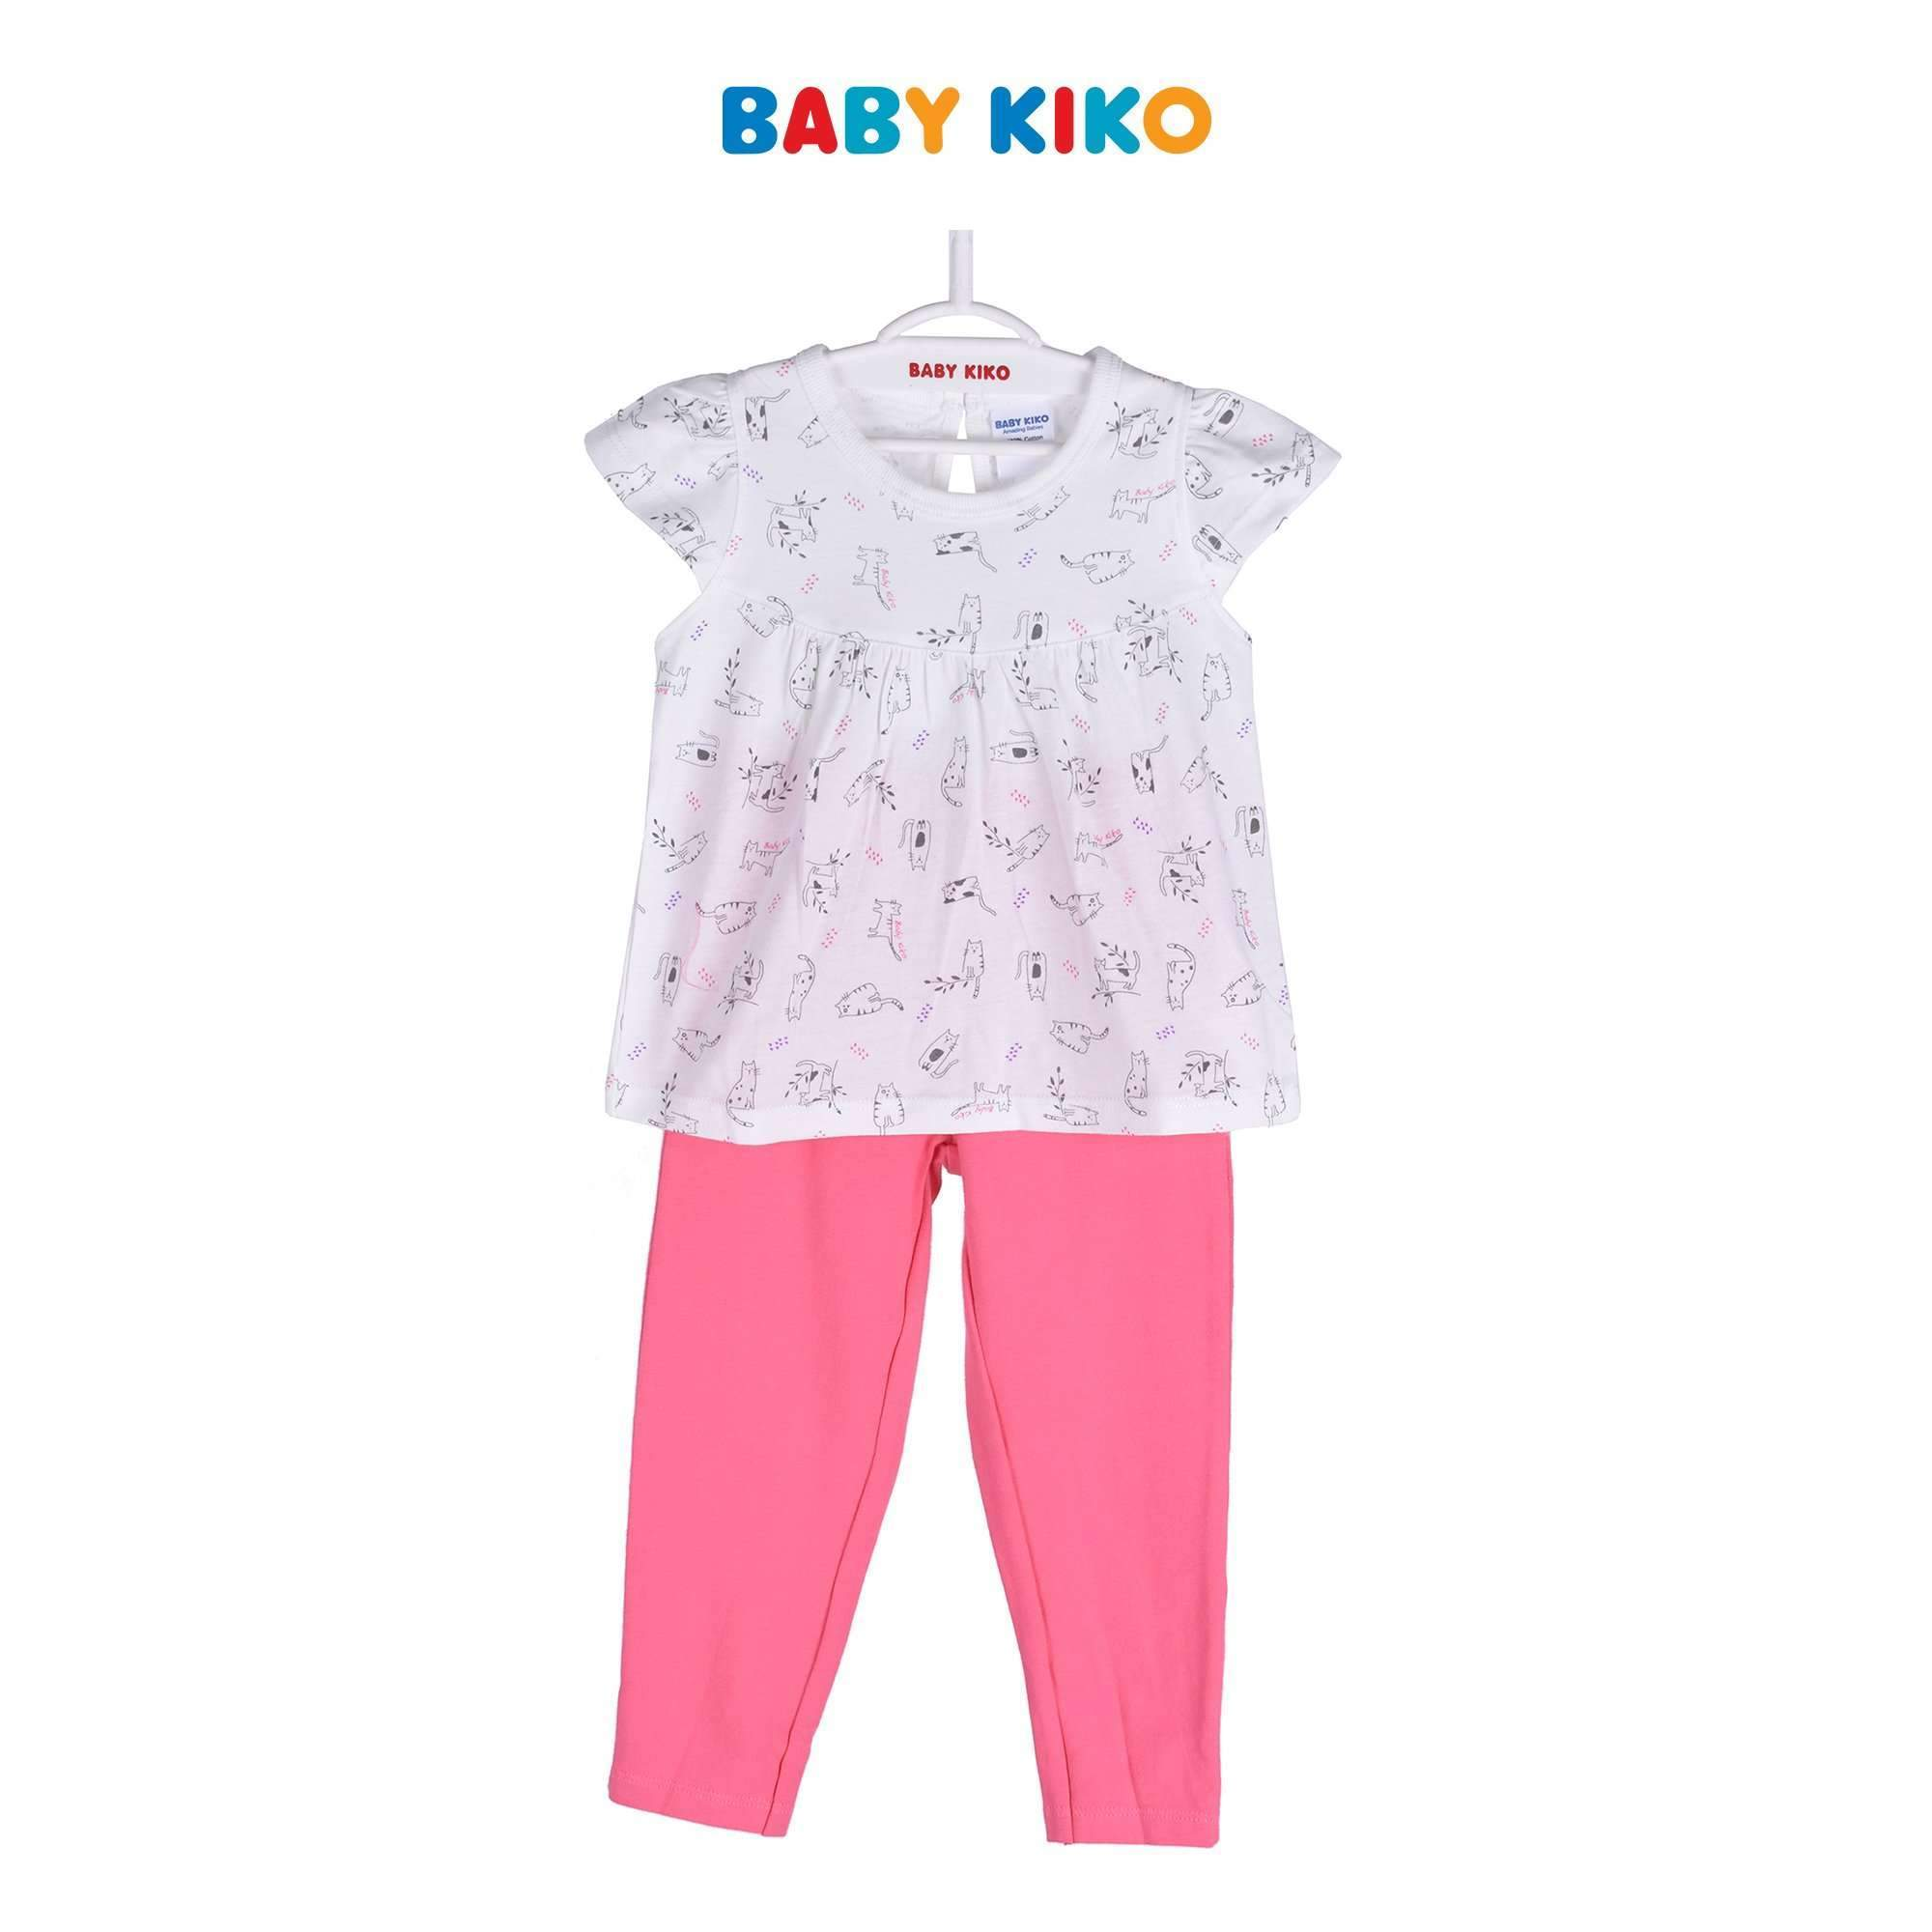 Baby KIKO Toddler Girl Short Sleeve Legging Suit - Pink 325111-422 : Buy Baby KIKO online at CMG.MY